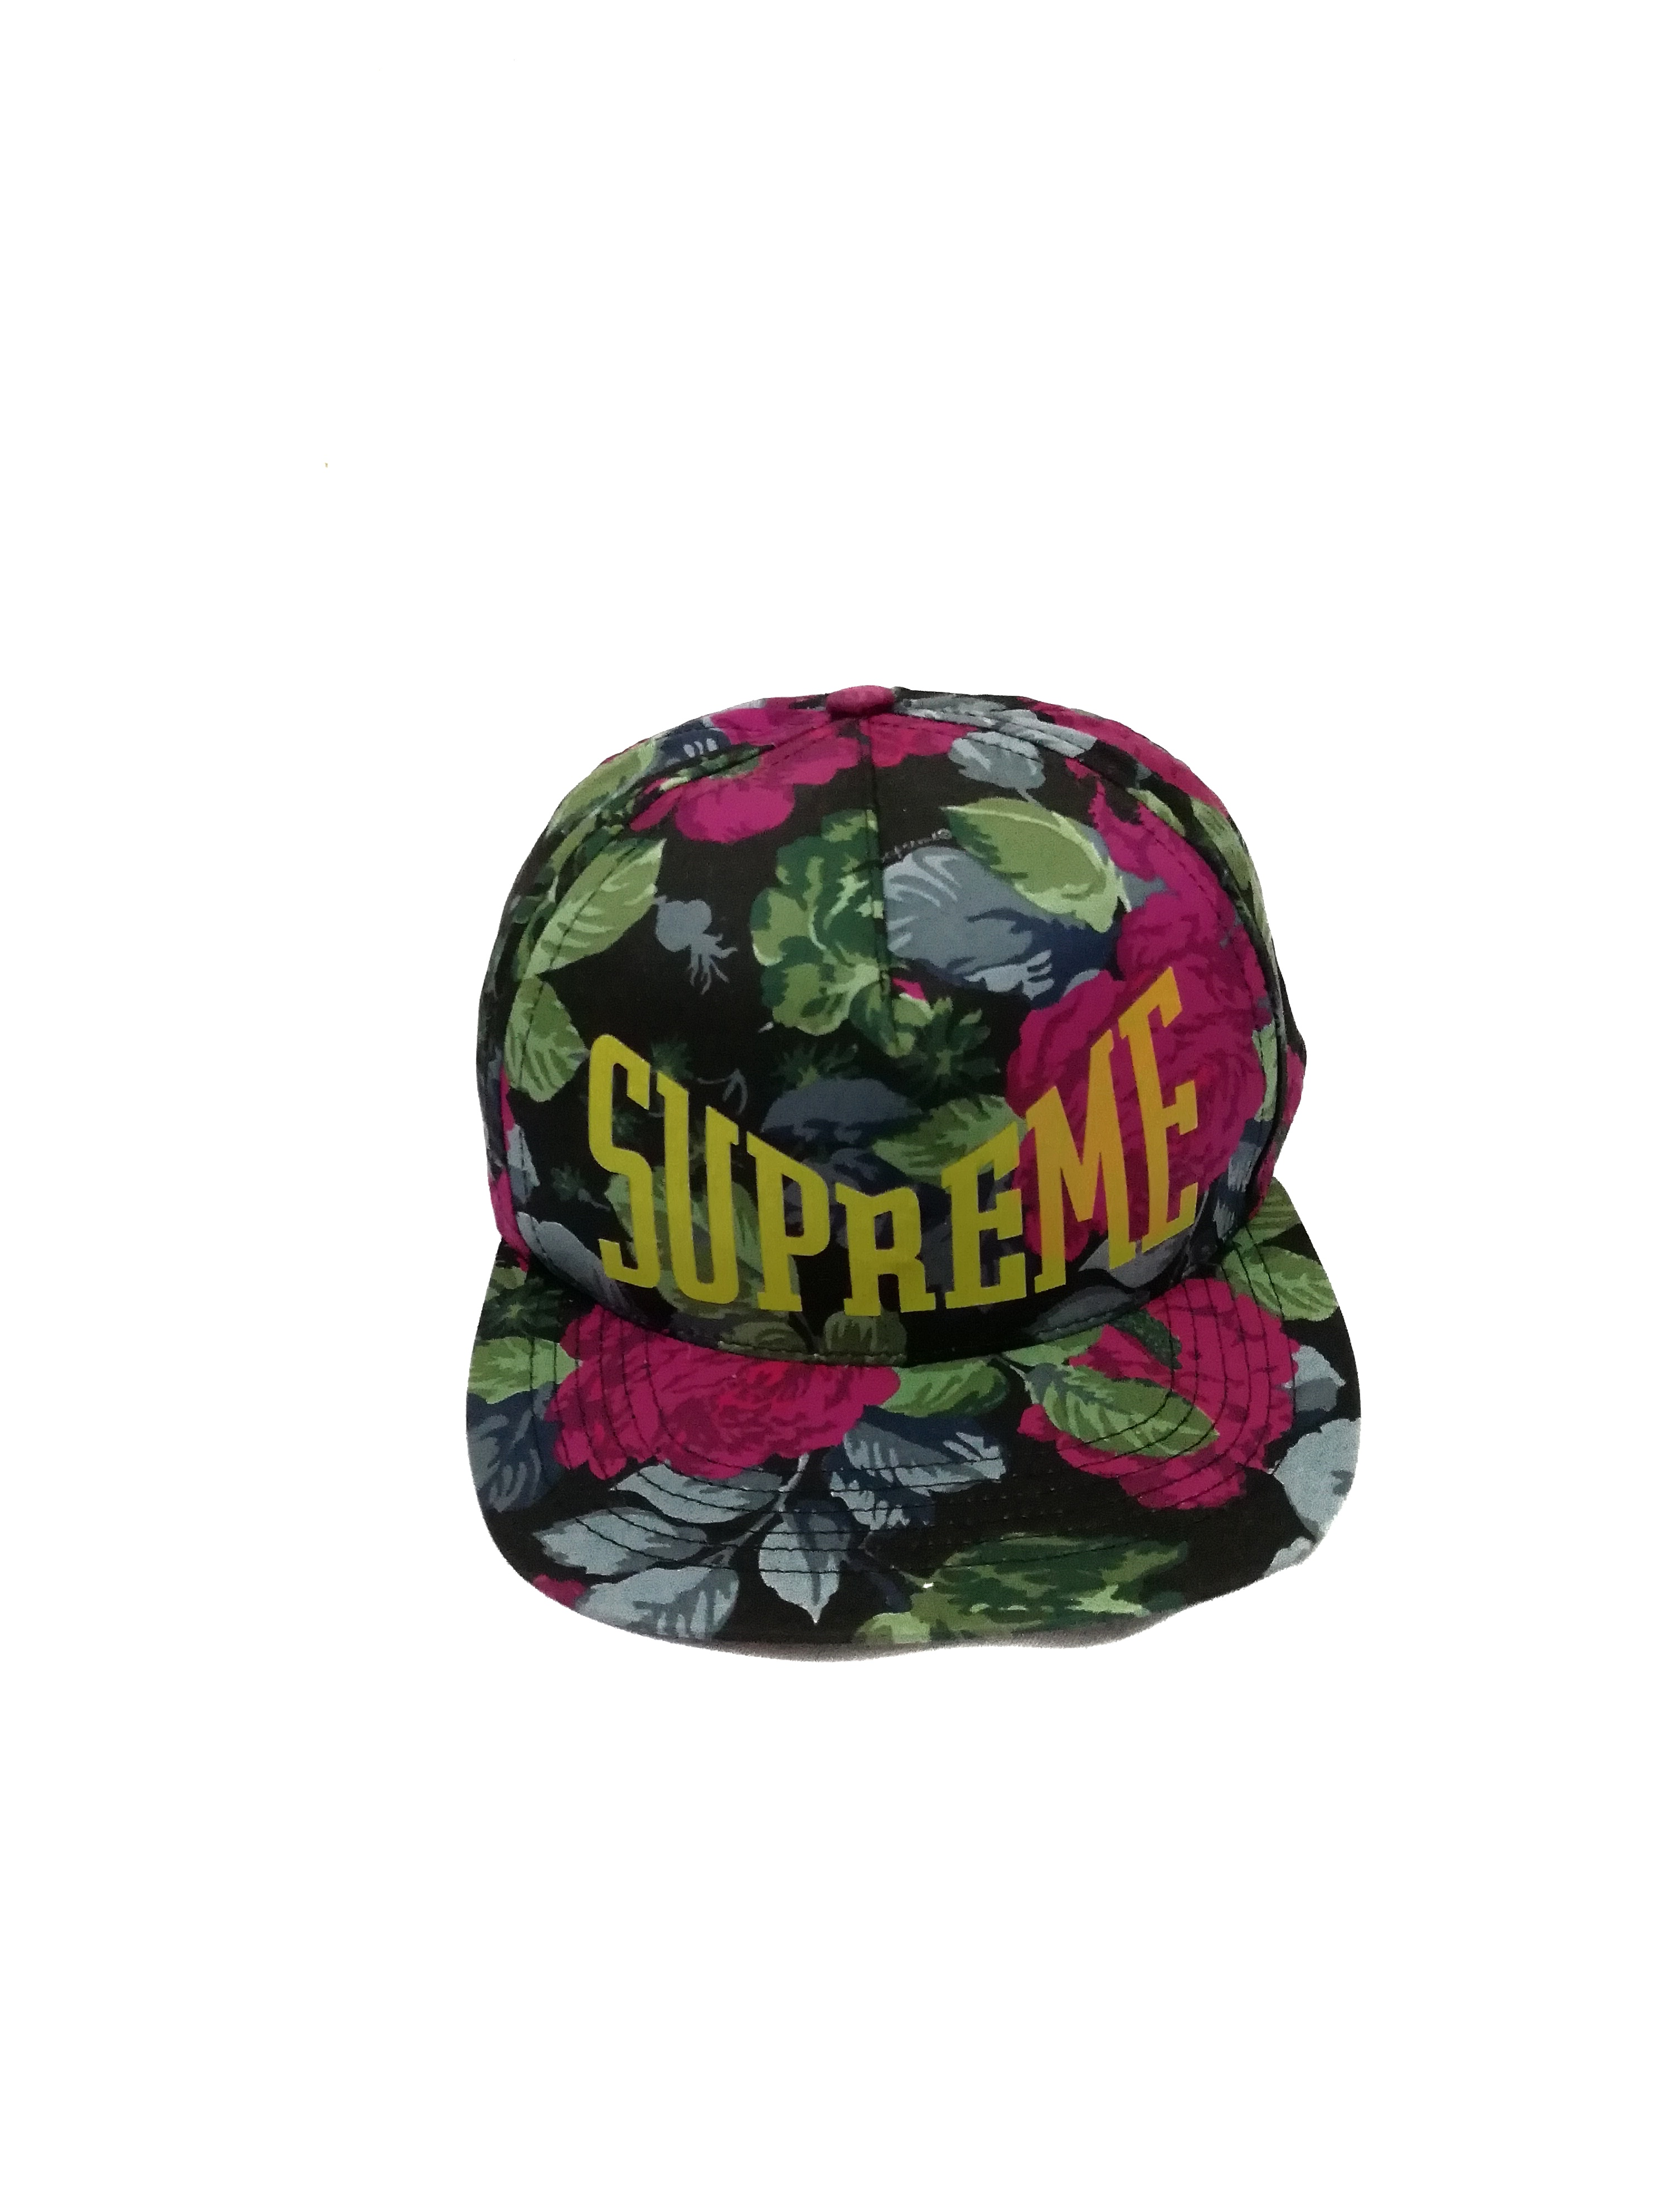 Supreme Supreme Floral Snapback Size one size - Hats for Sale - Grailed 519f9591d99